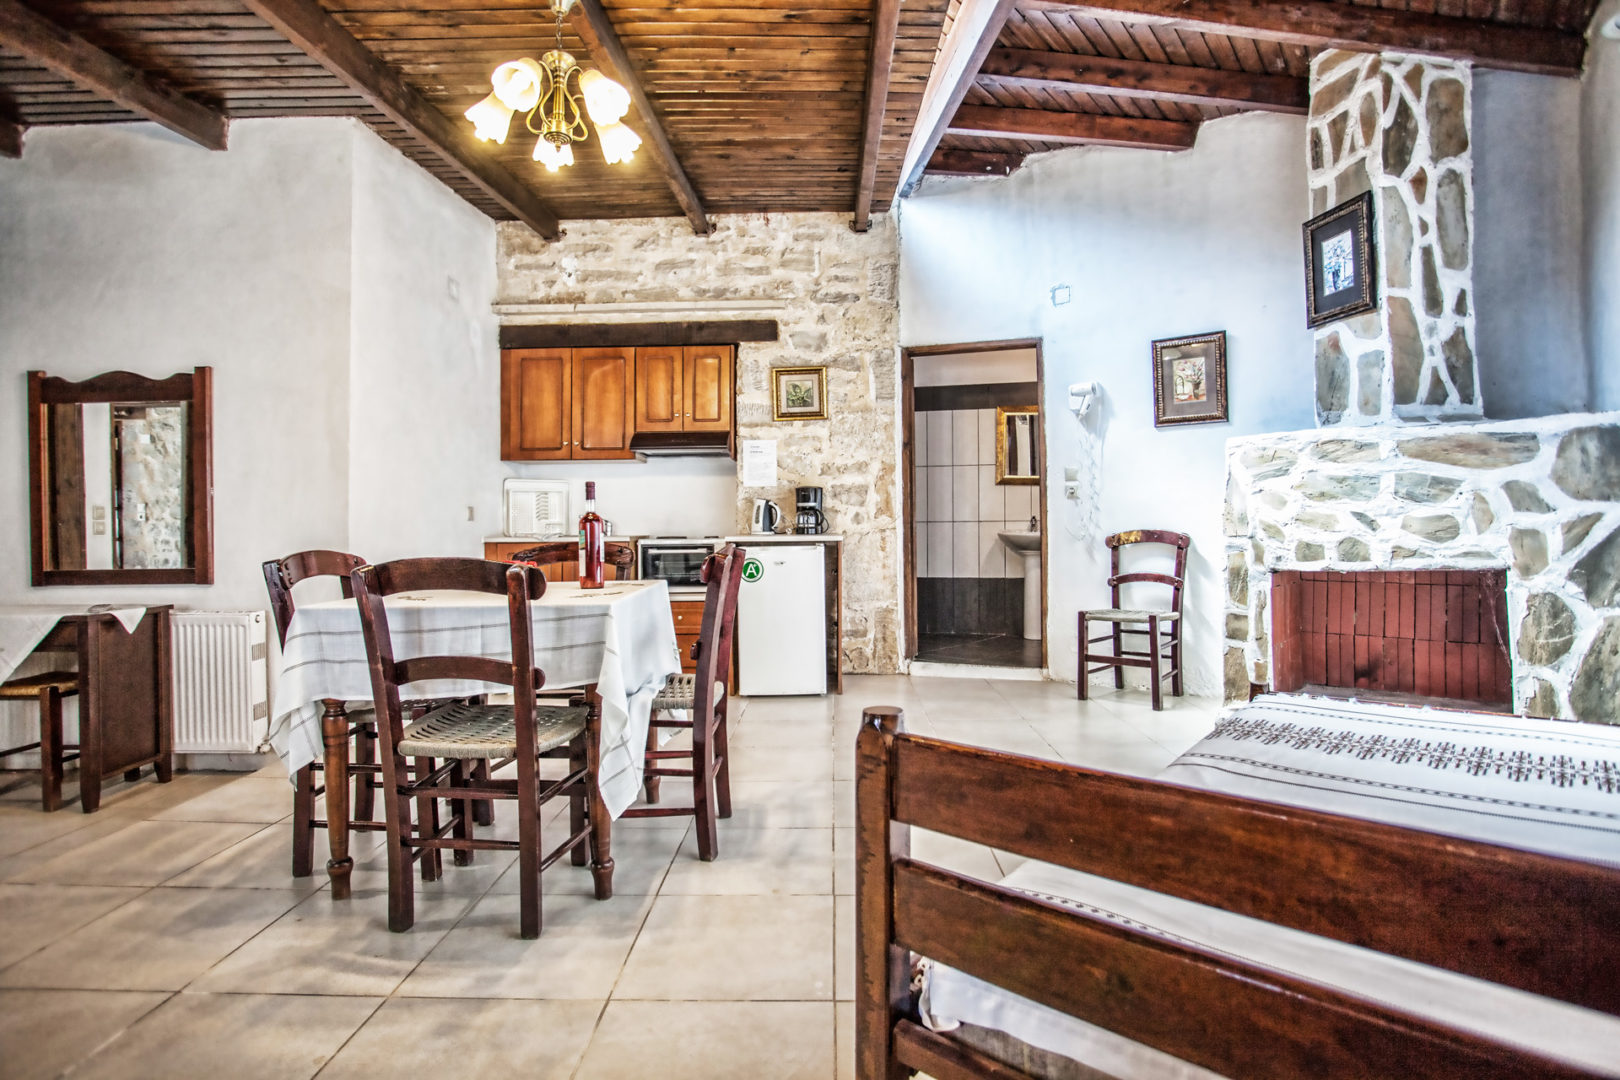 1-Bedroom Apartment in Bali Crete - Stone Village